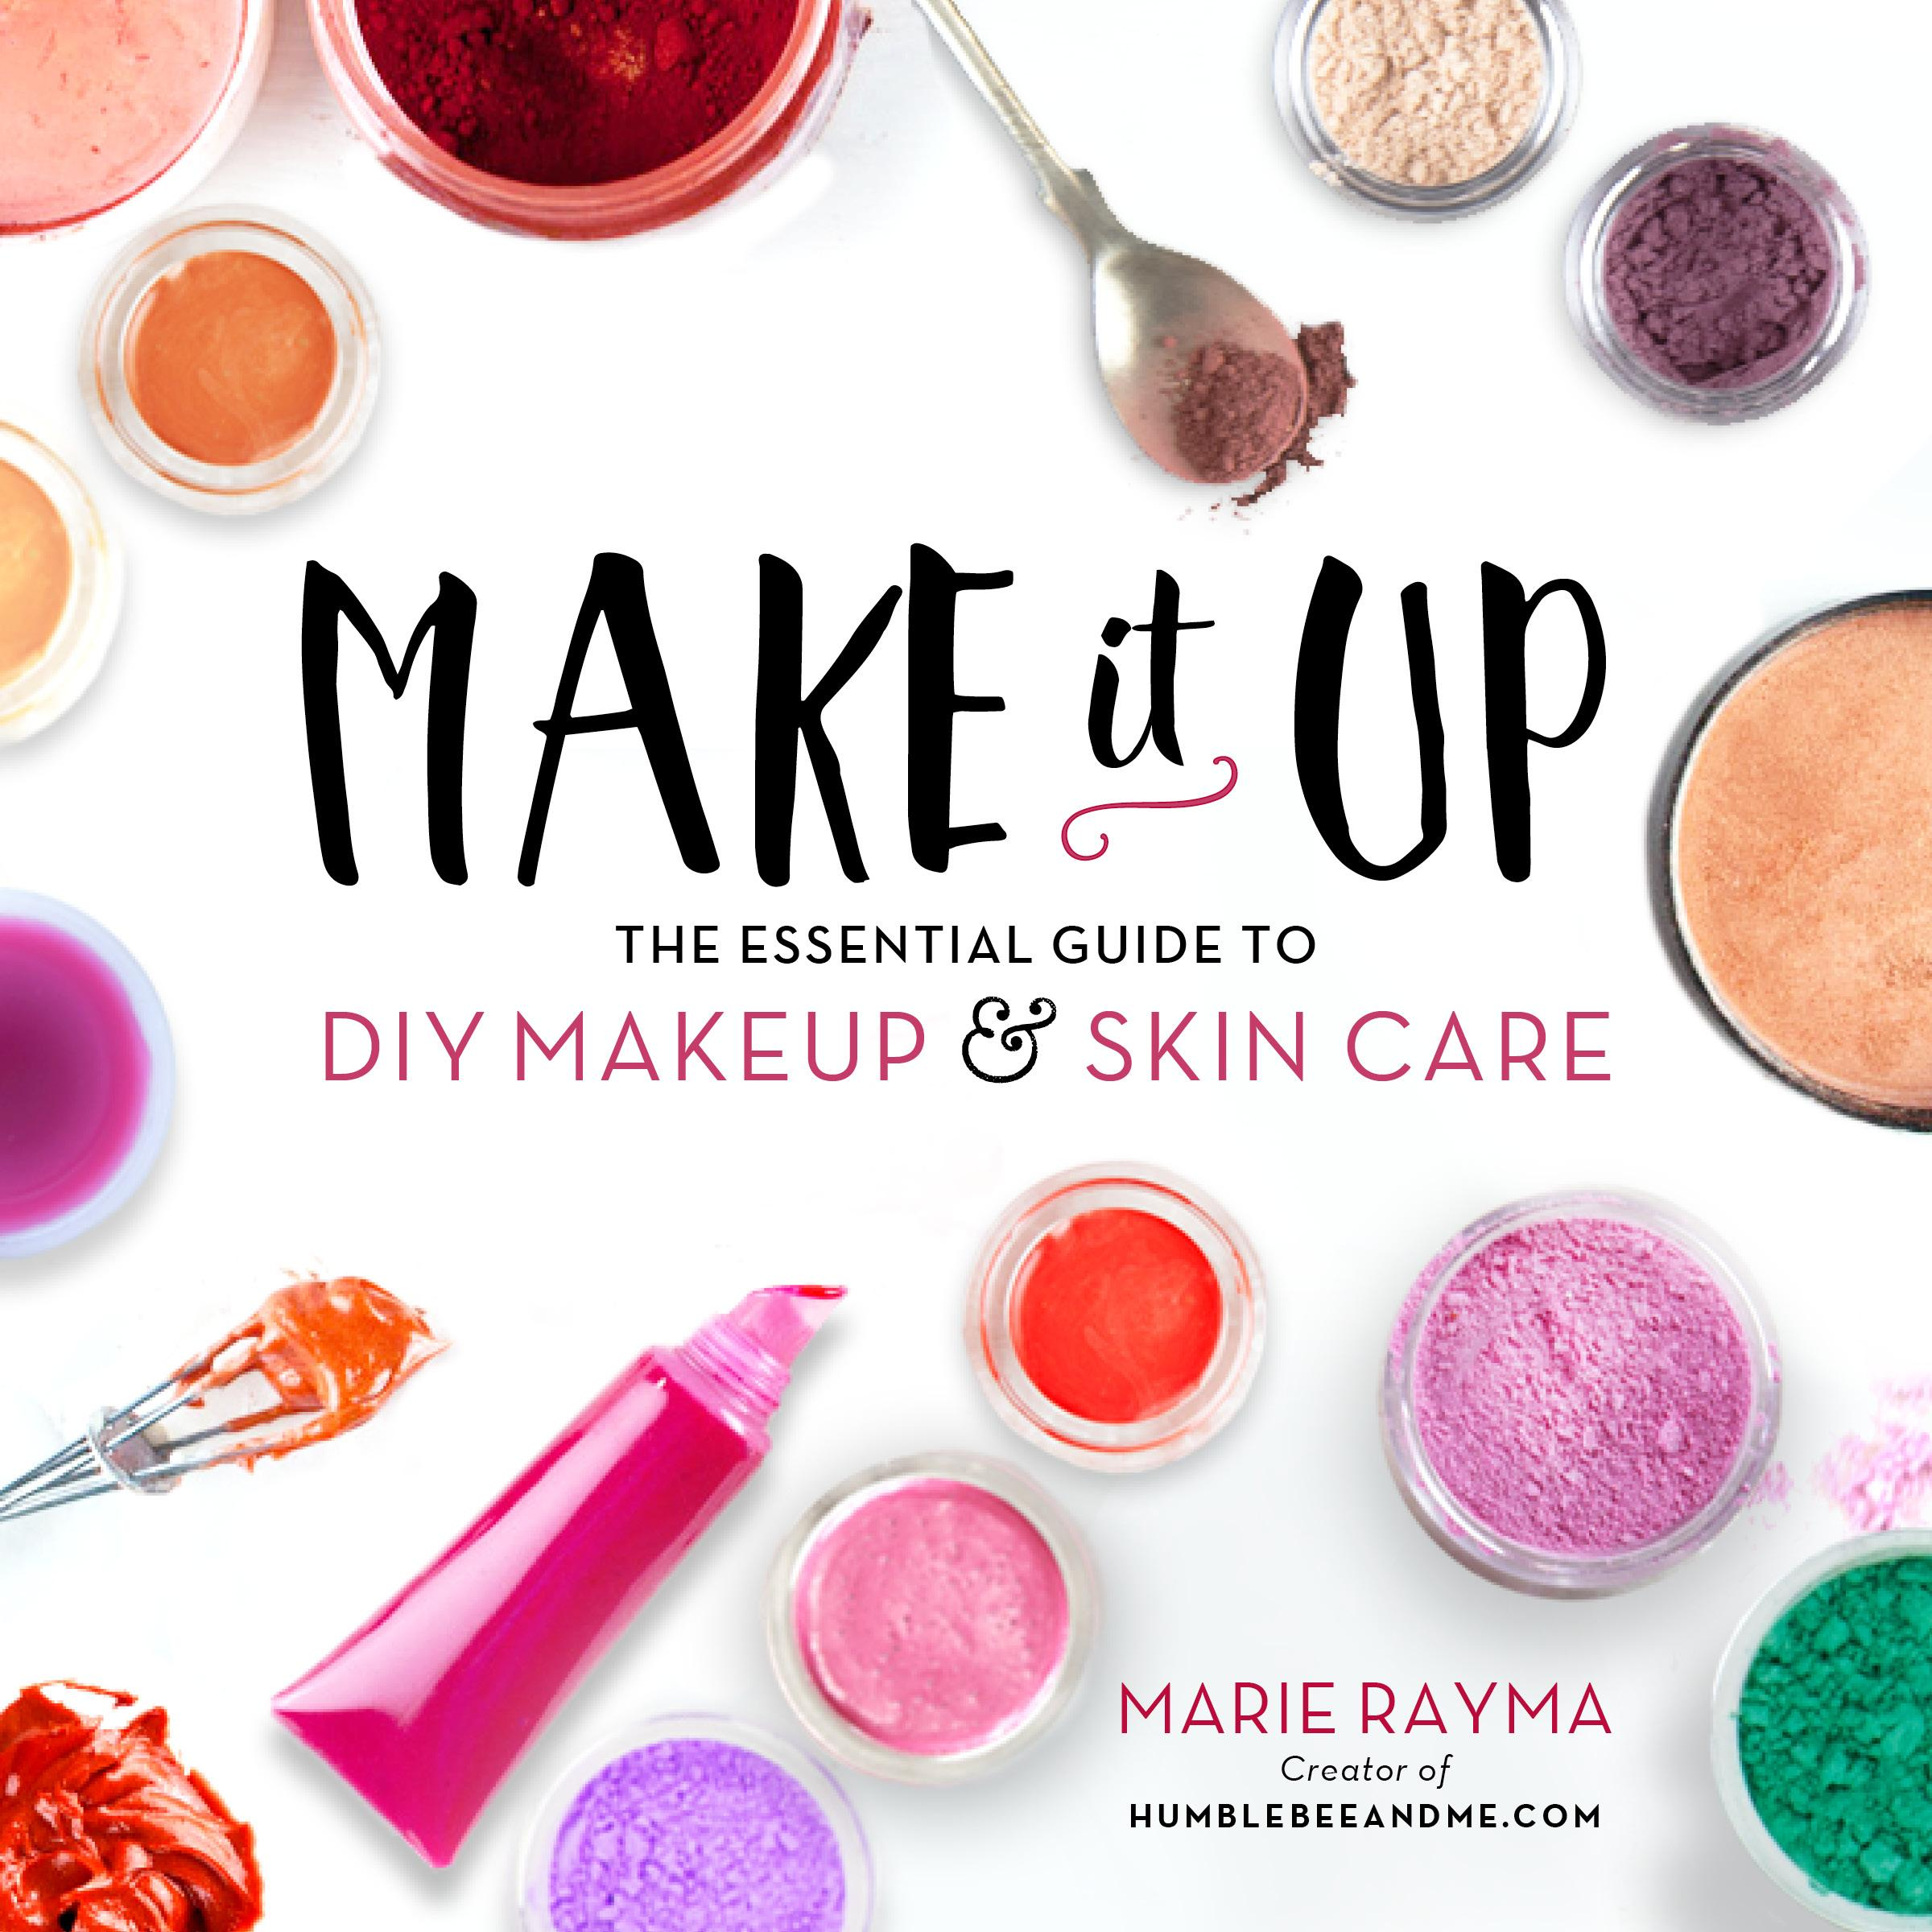 Make It Up: The Essential Guide to DIY Makeup and Skin Care (Paperback)